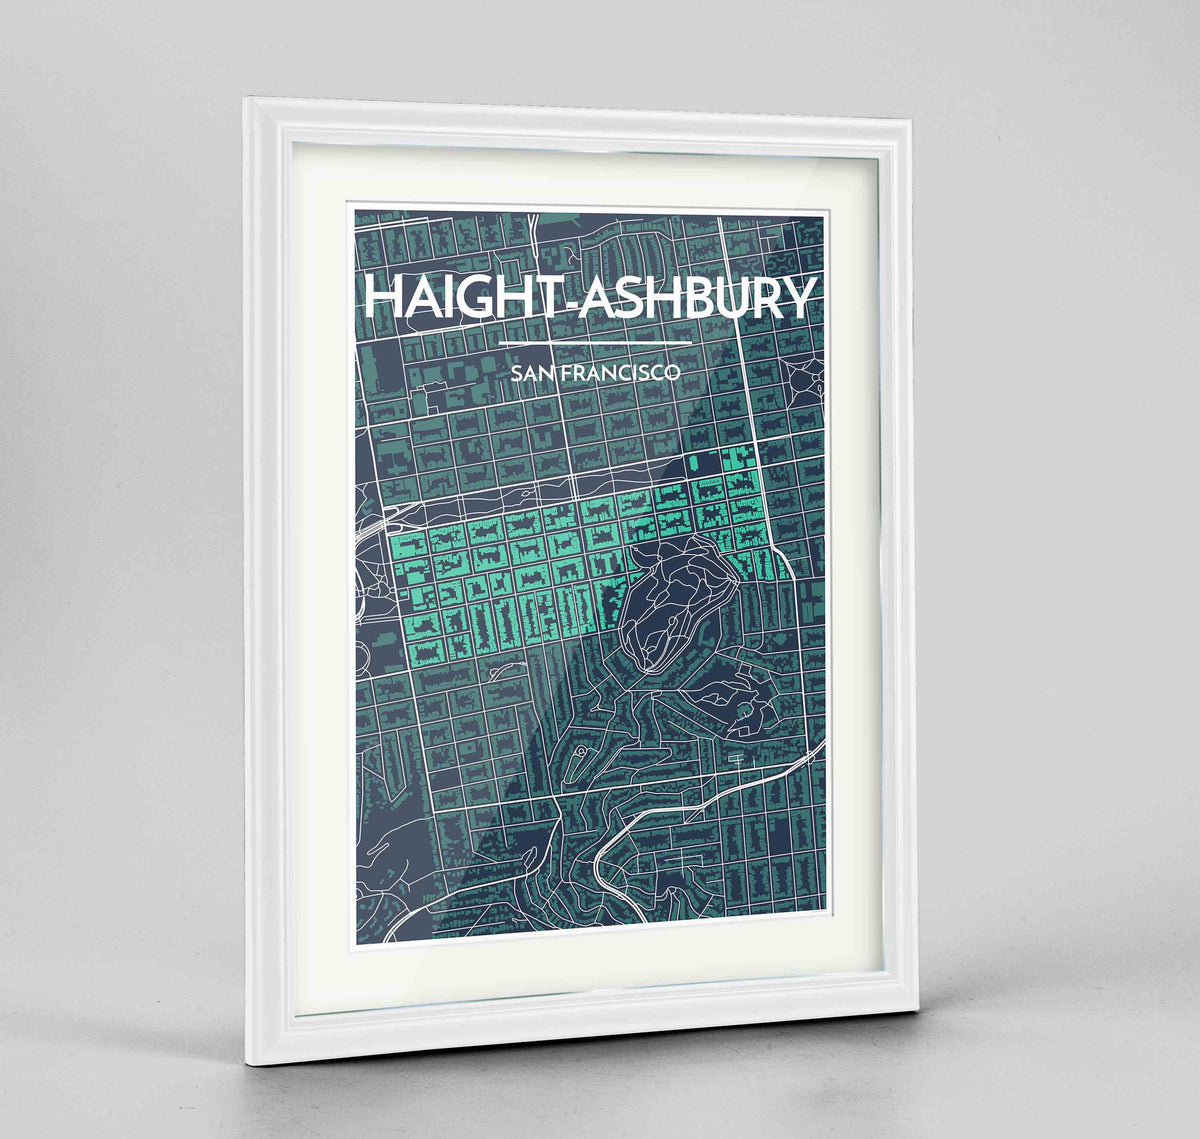 "Framed Haight-Ashbury San Francisco Map Art Print 24x36"" Traditional White frame Point Two Design Group"